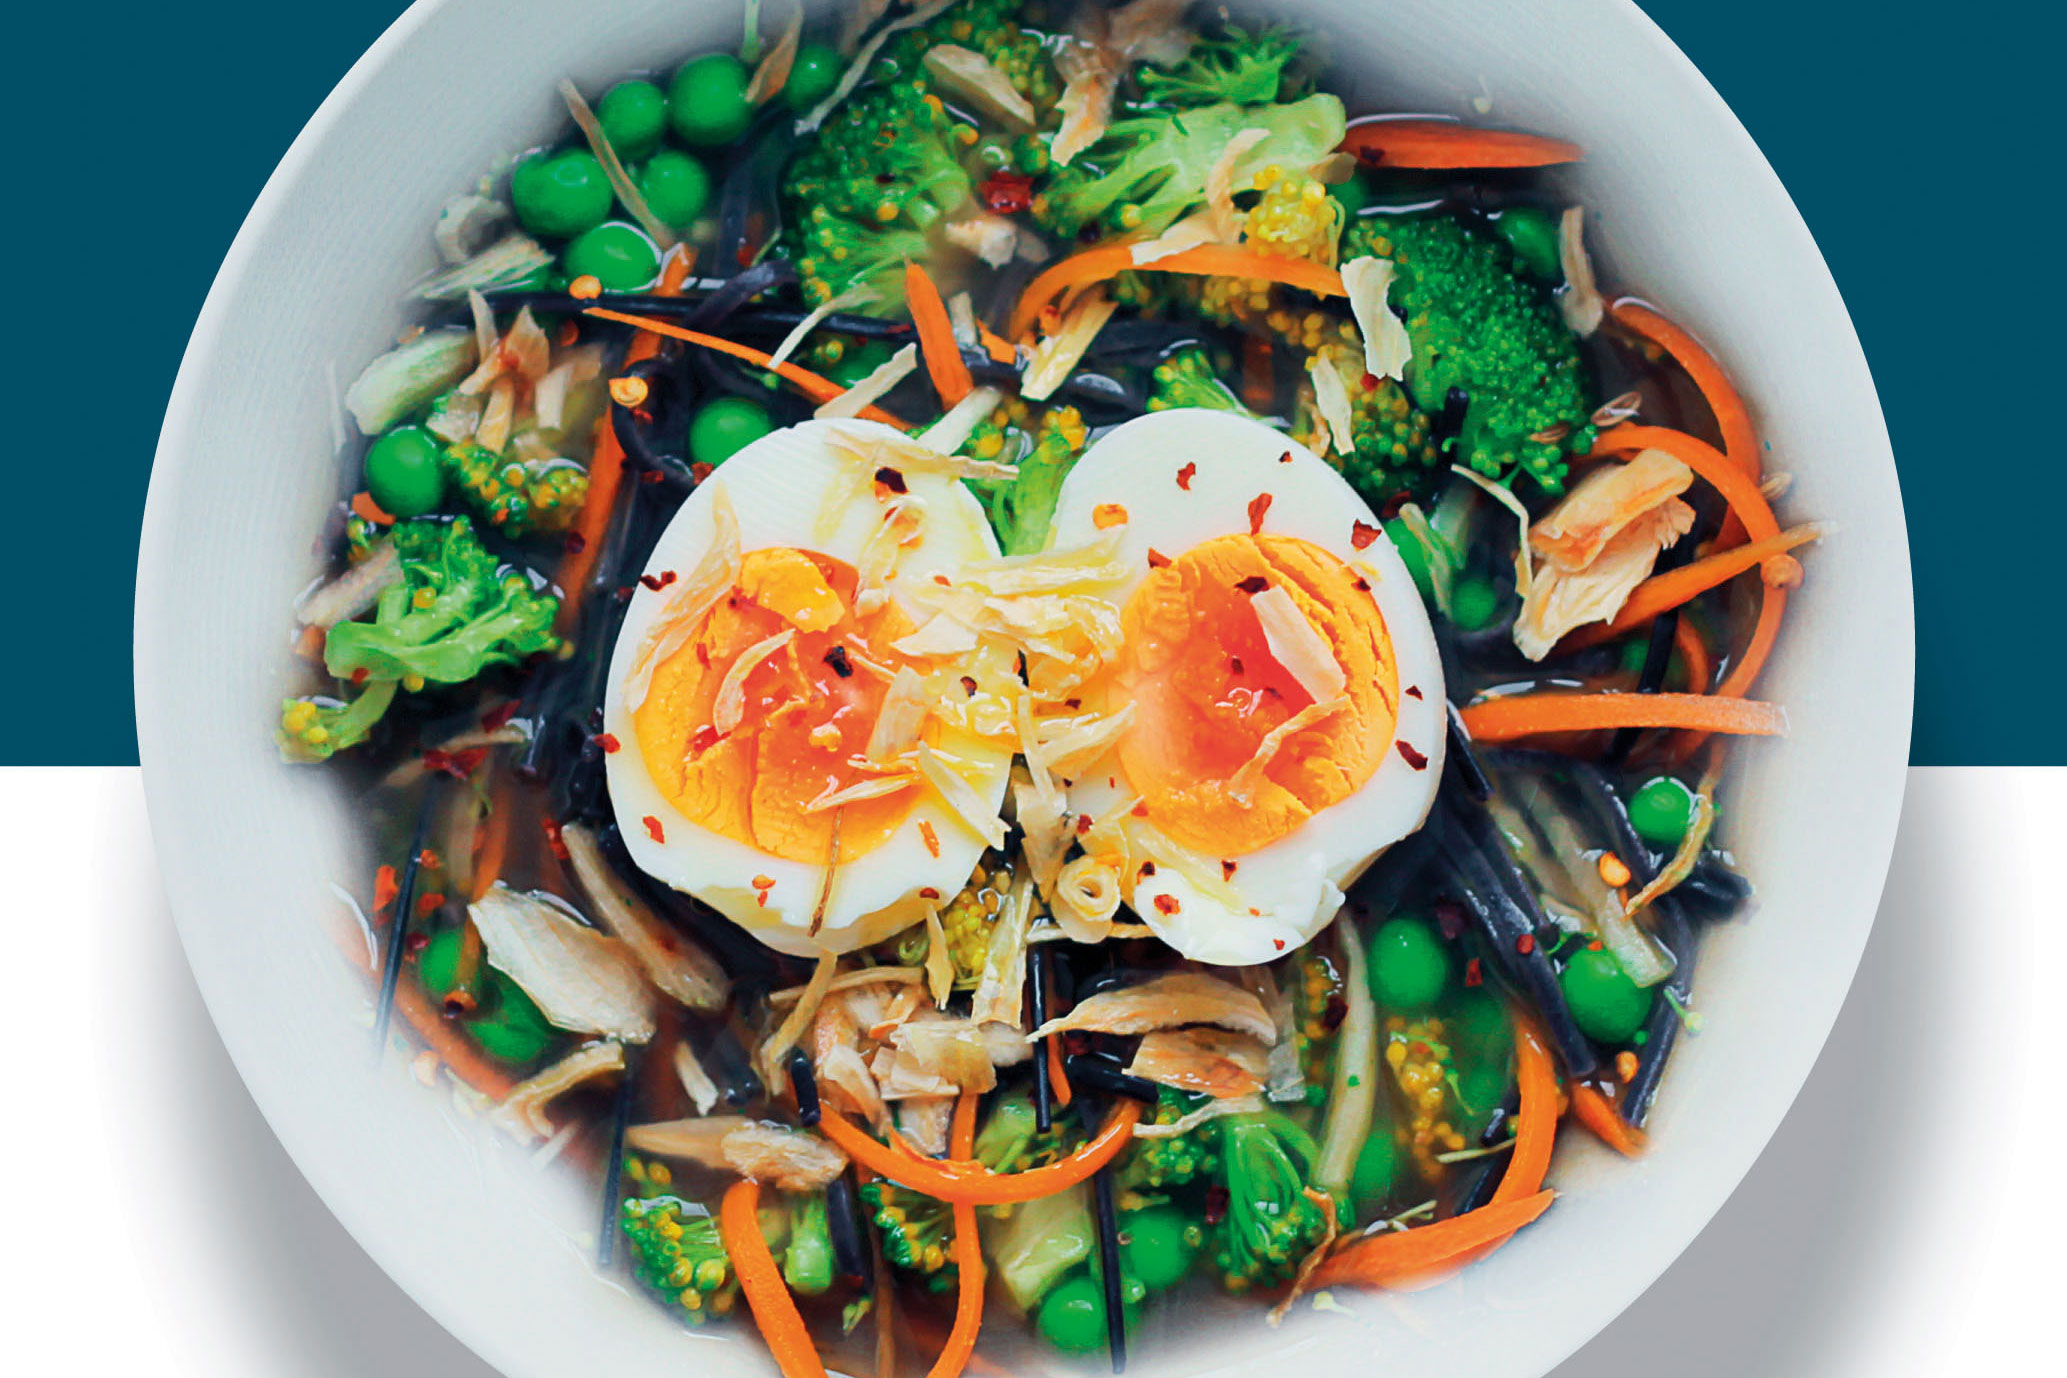 ThisOne-Bowl Supper Recipe Is Healthy Yet Super Filling